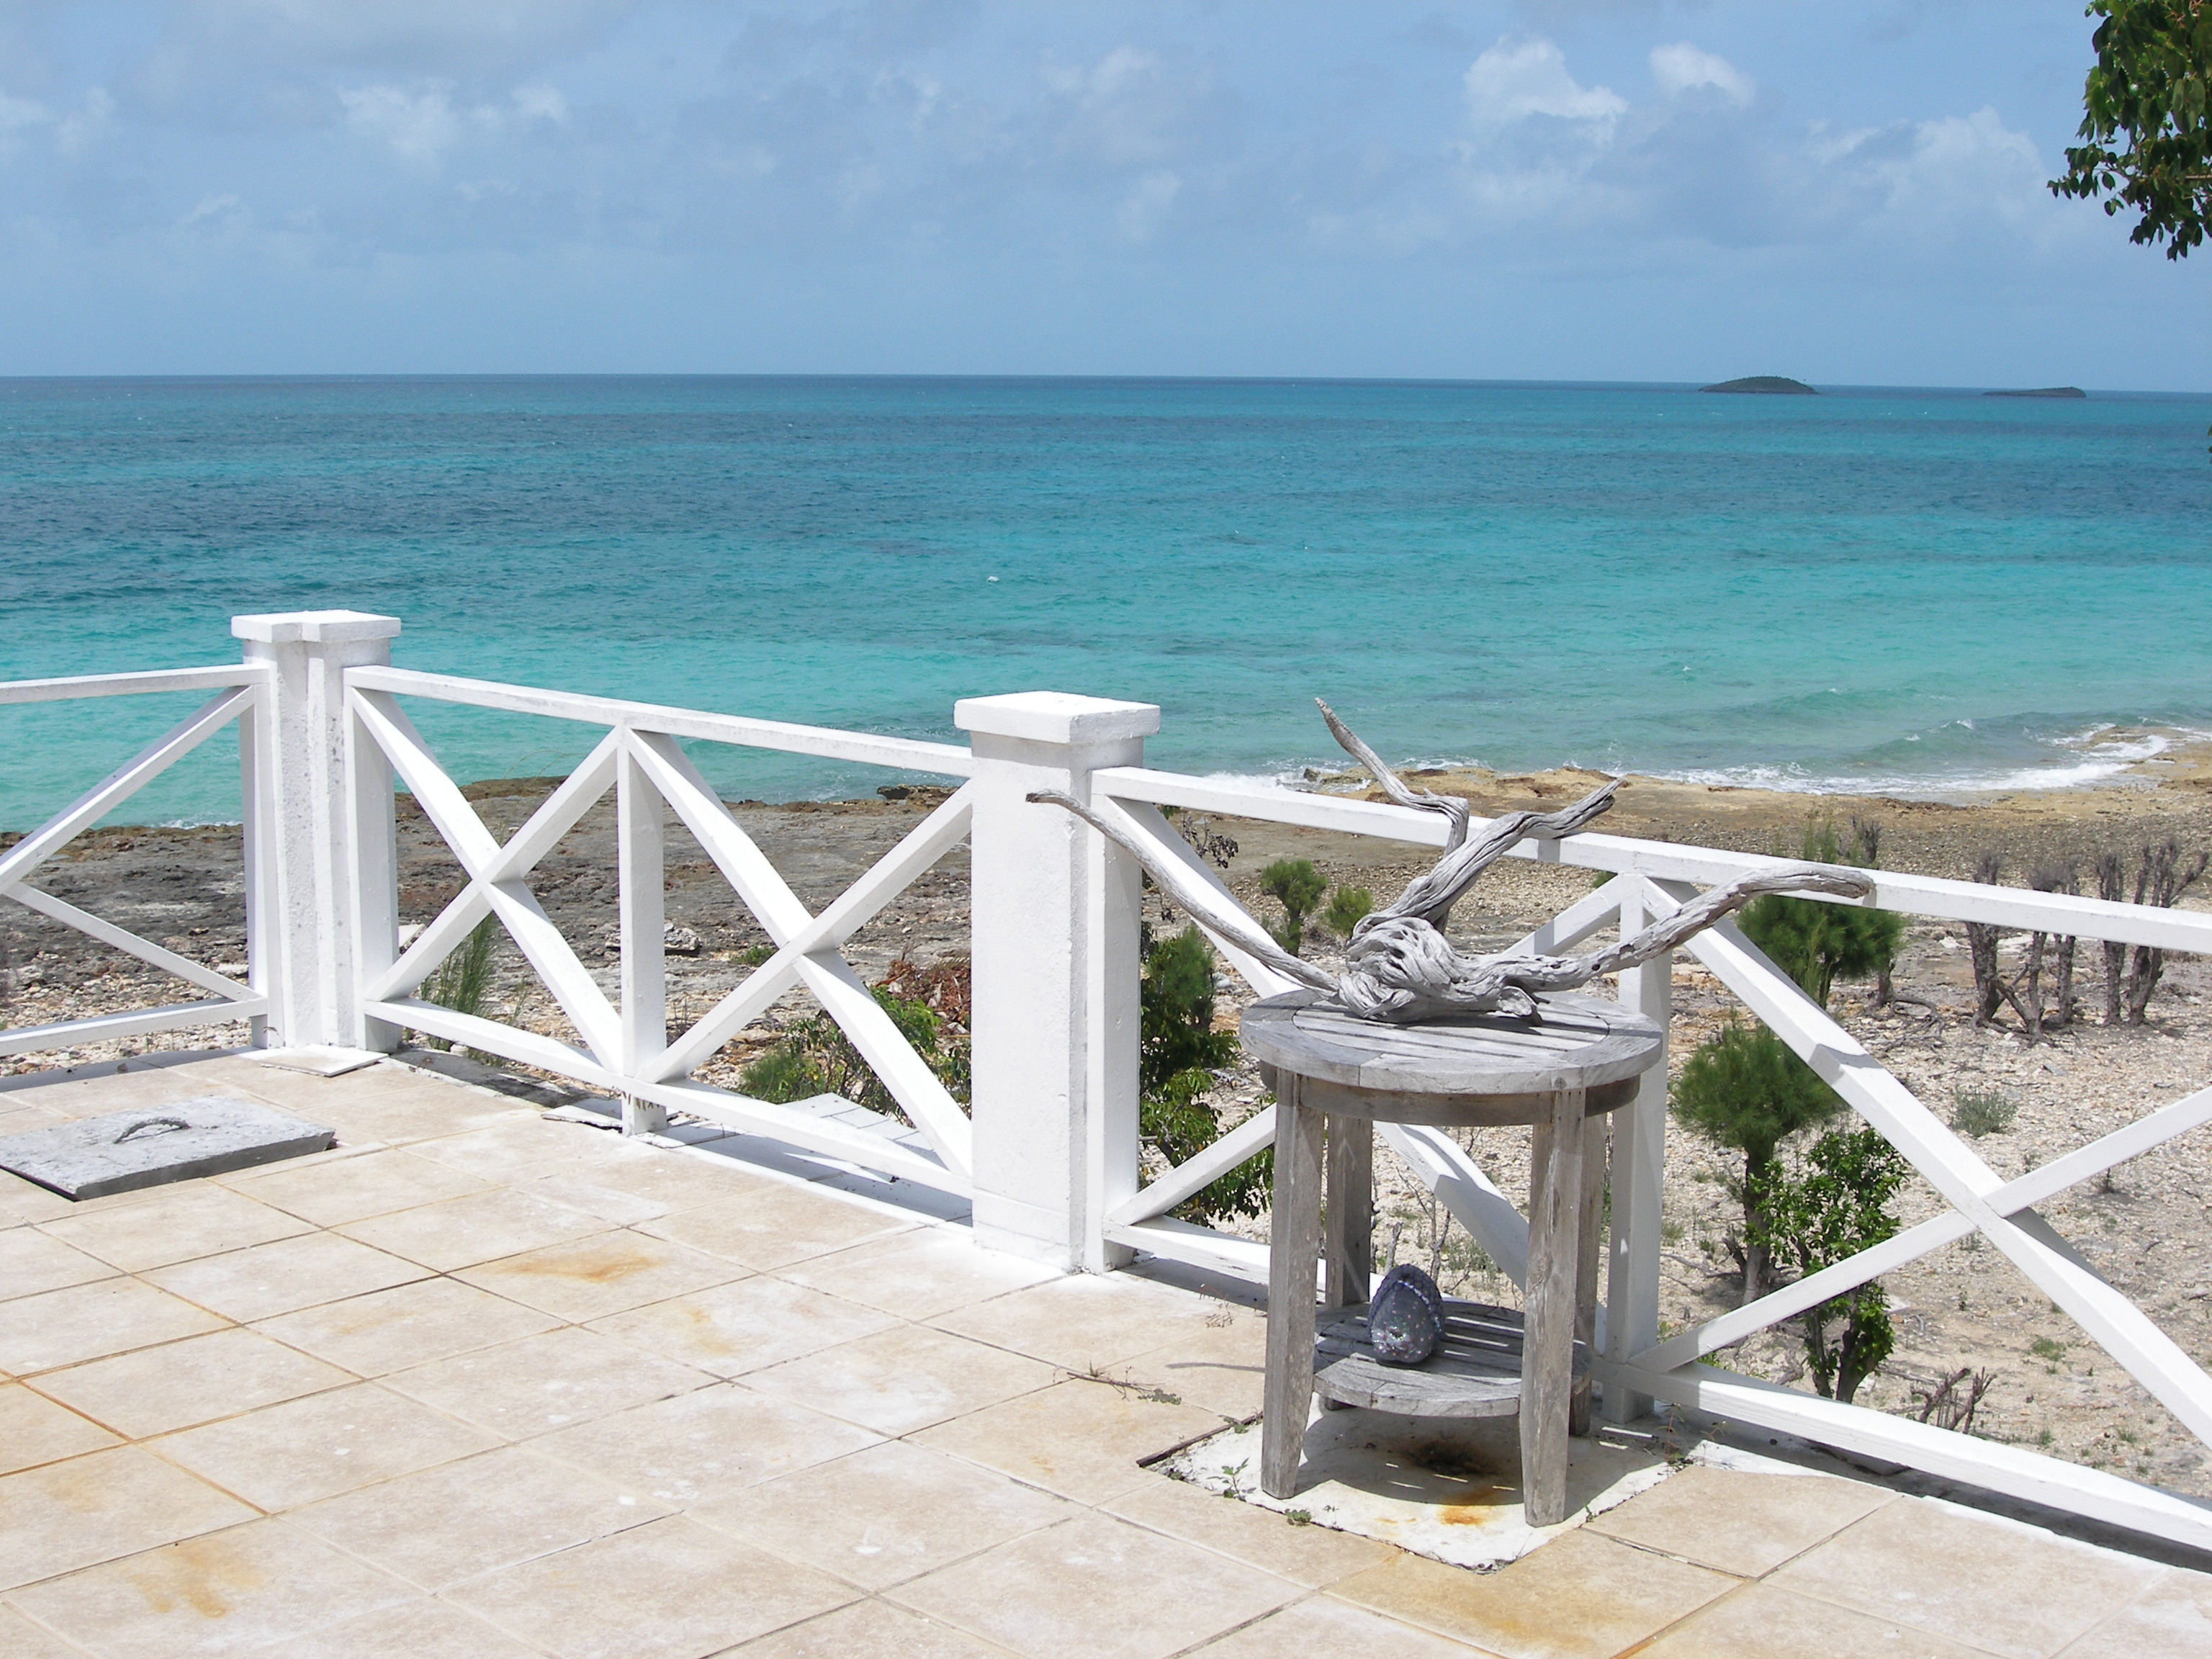 Additional photo for property listing at Endless Summer Palmetto Point, Eleuthera Bahamas